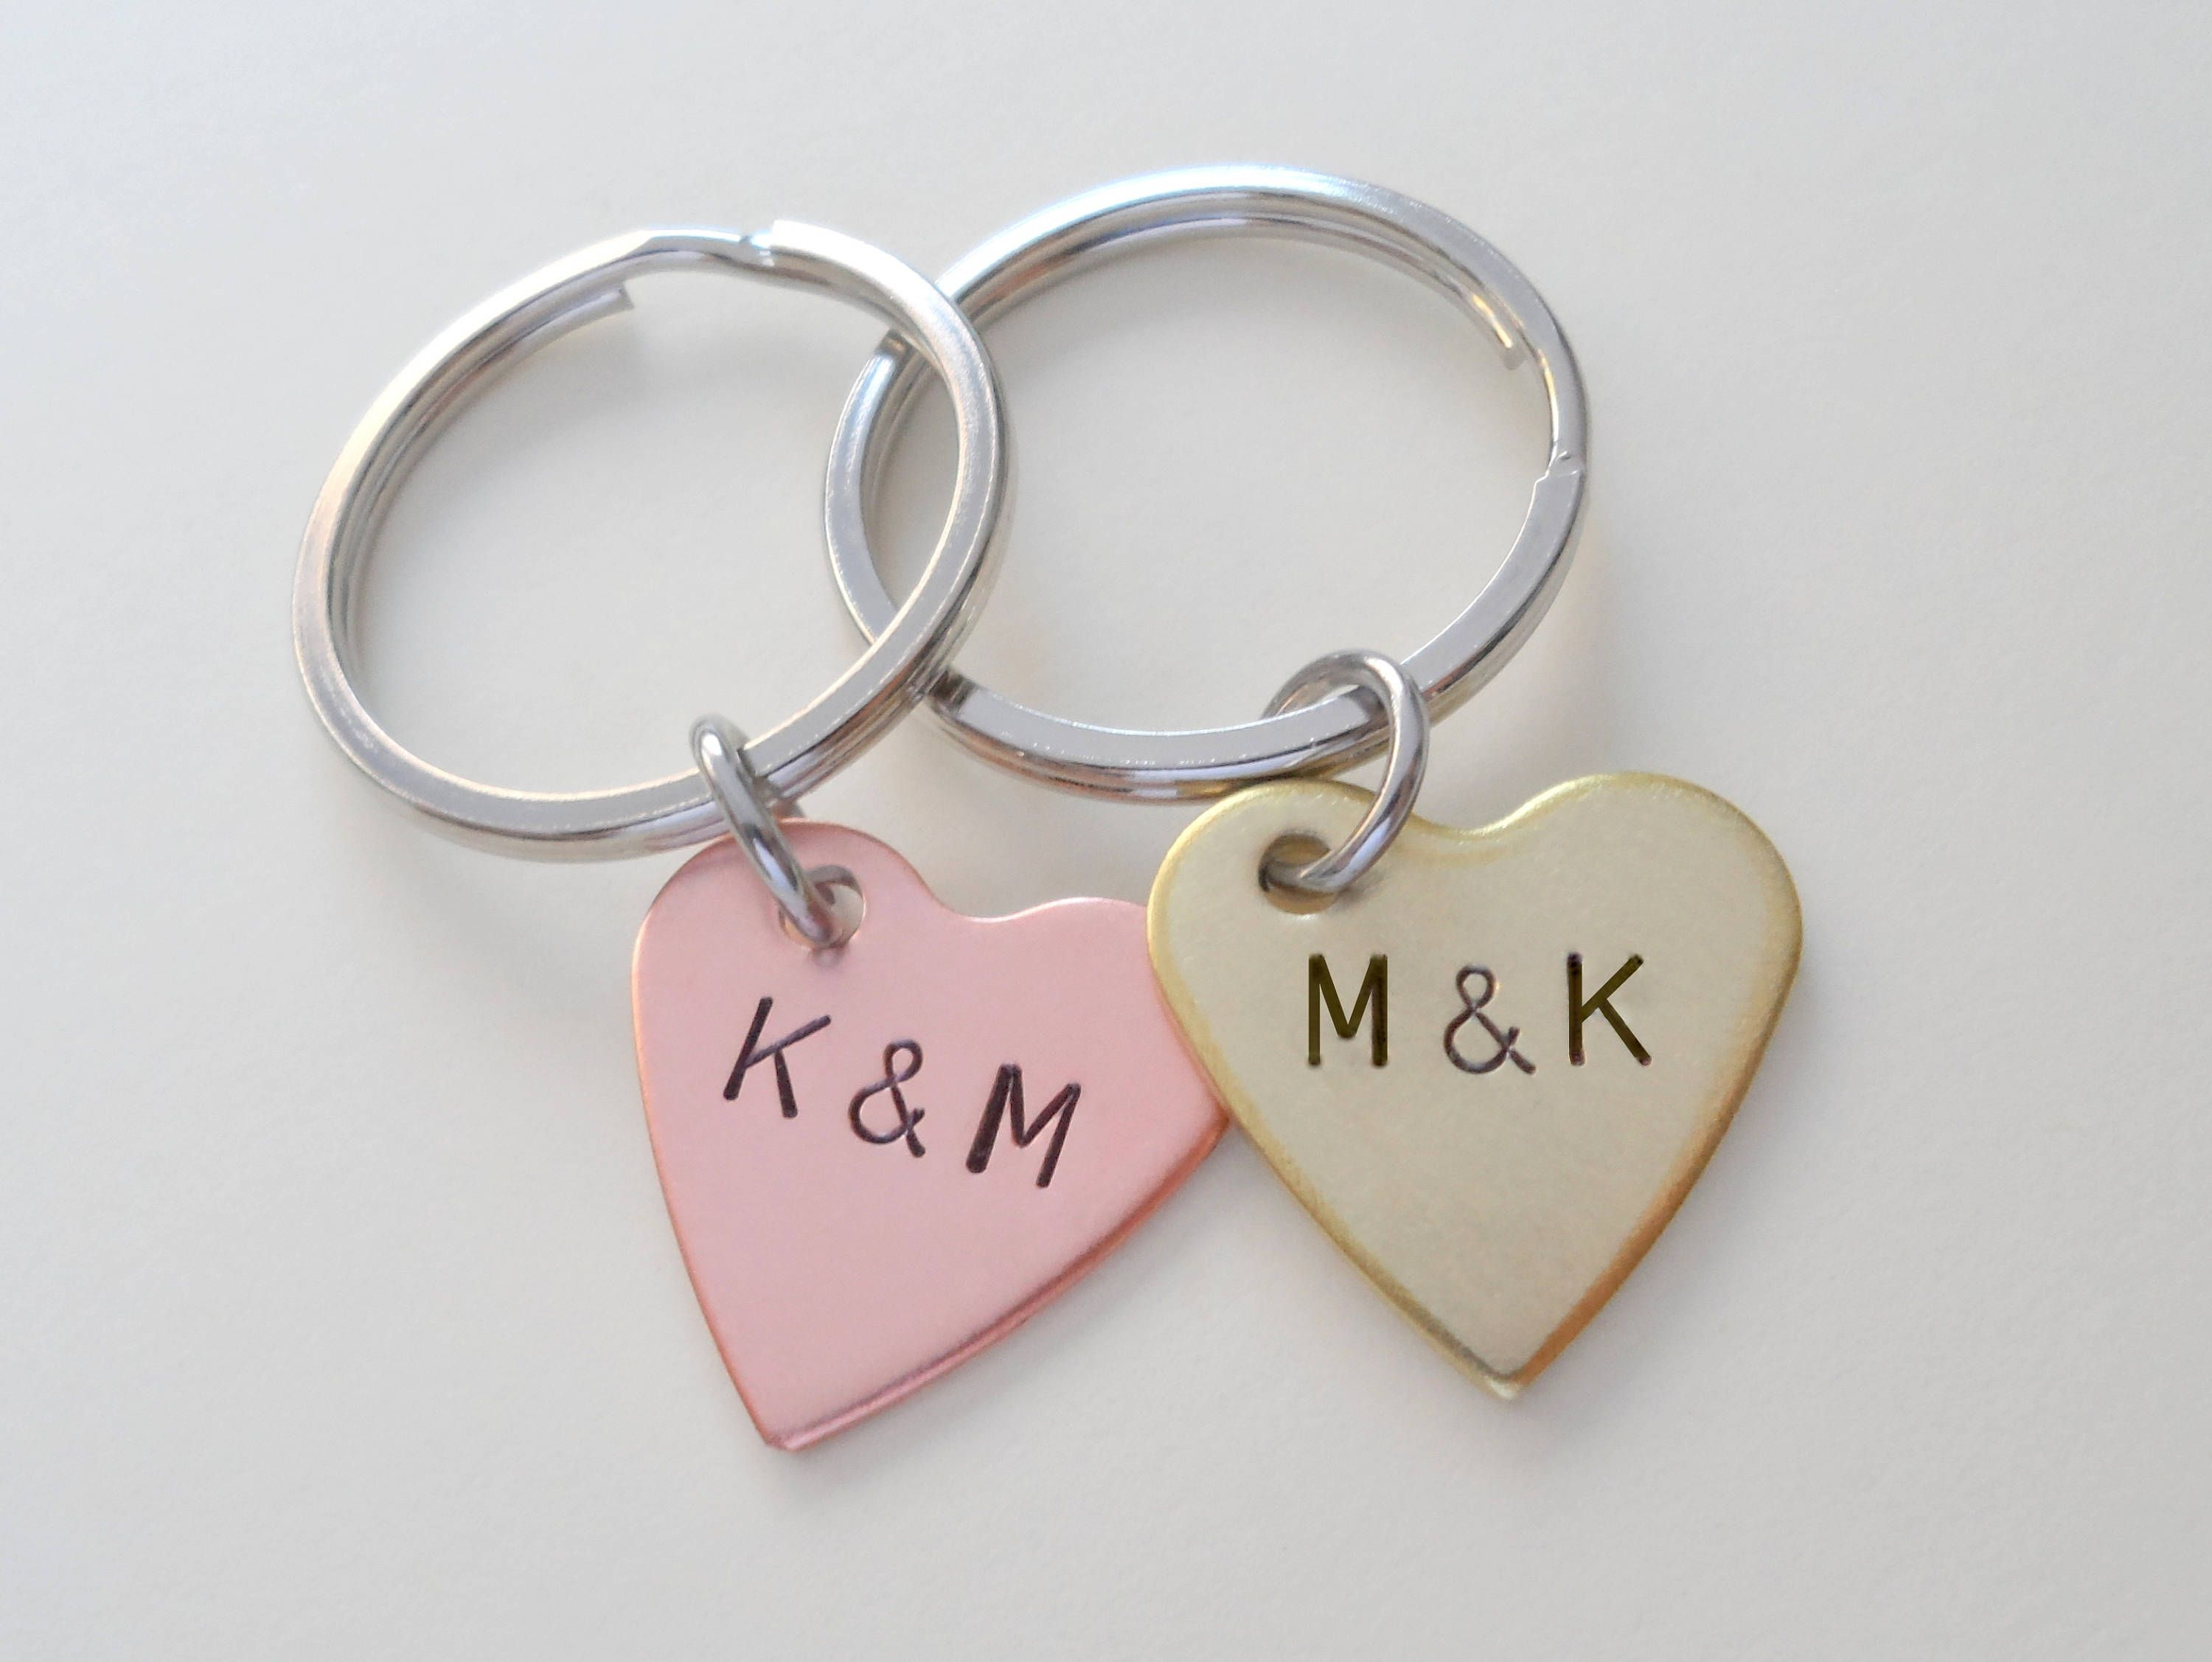 Brass & Copper Heart Keychains, Traditional and Modern 7